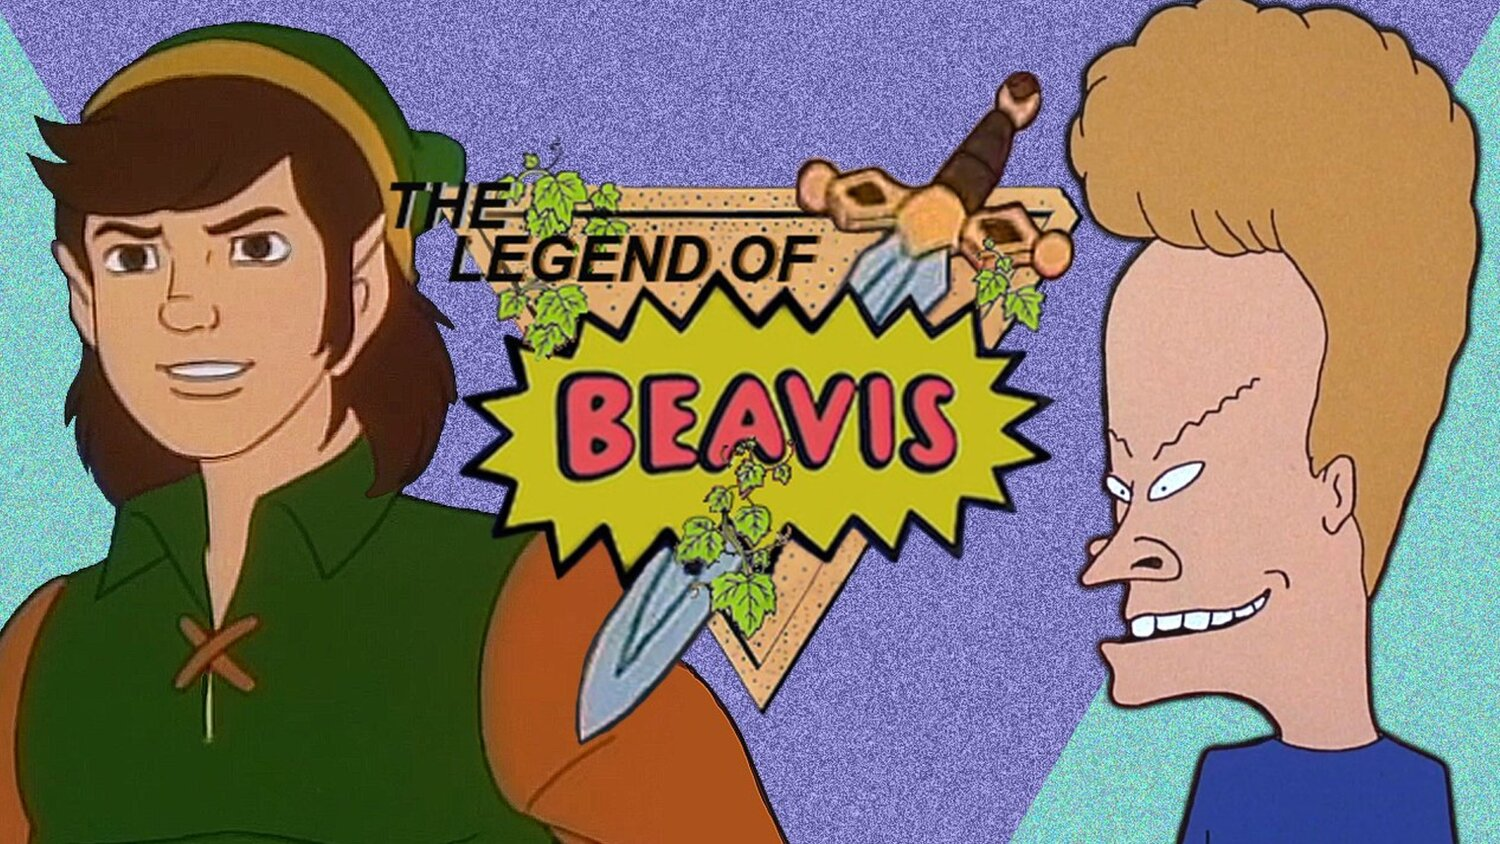 The LEGEND OF ZELDA Animated Series Hilariously Features Beavis From BEAVIS & BUTT-HEAD as The Voice of Link — GeekTyrant